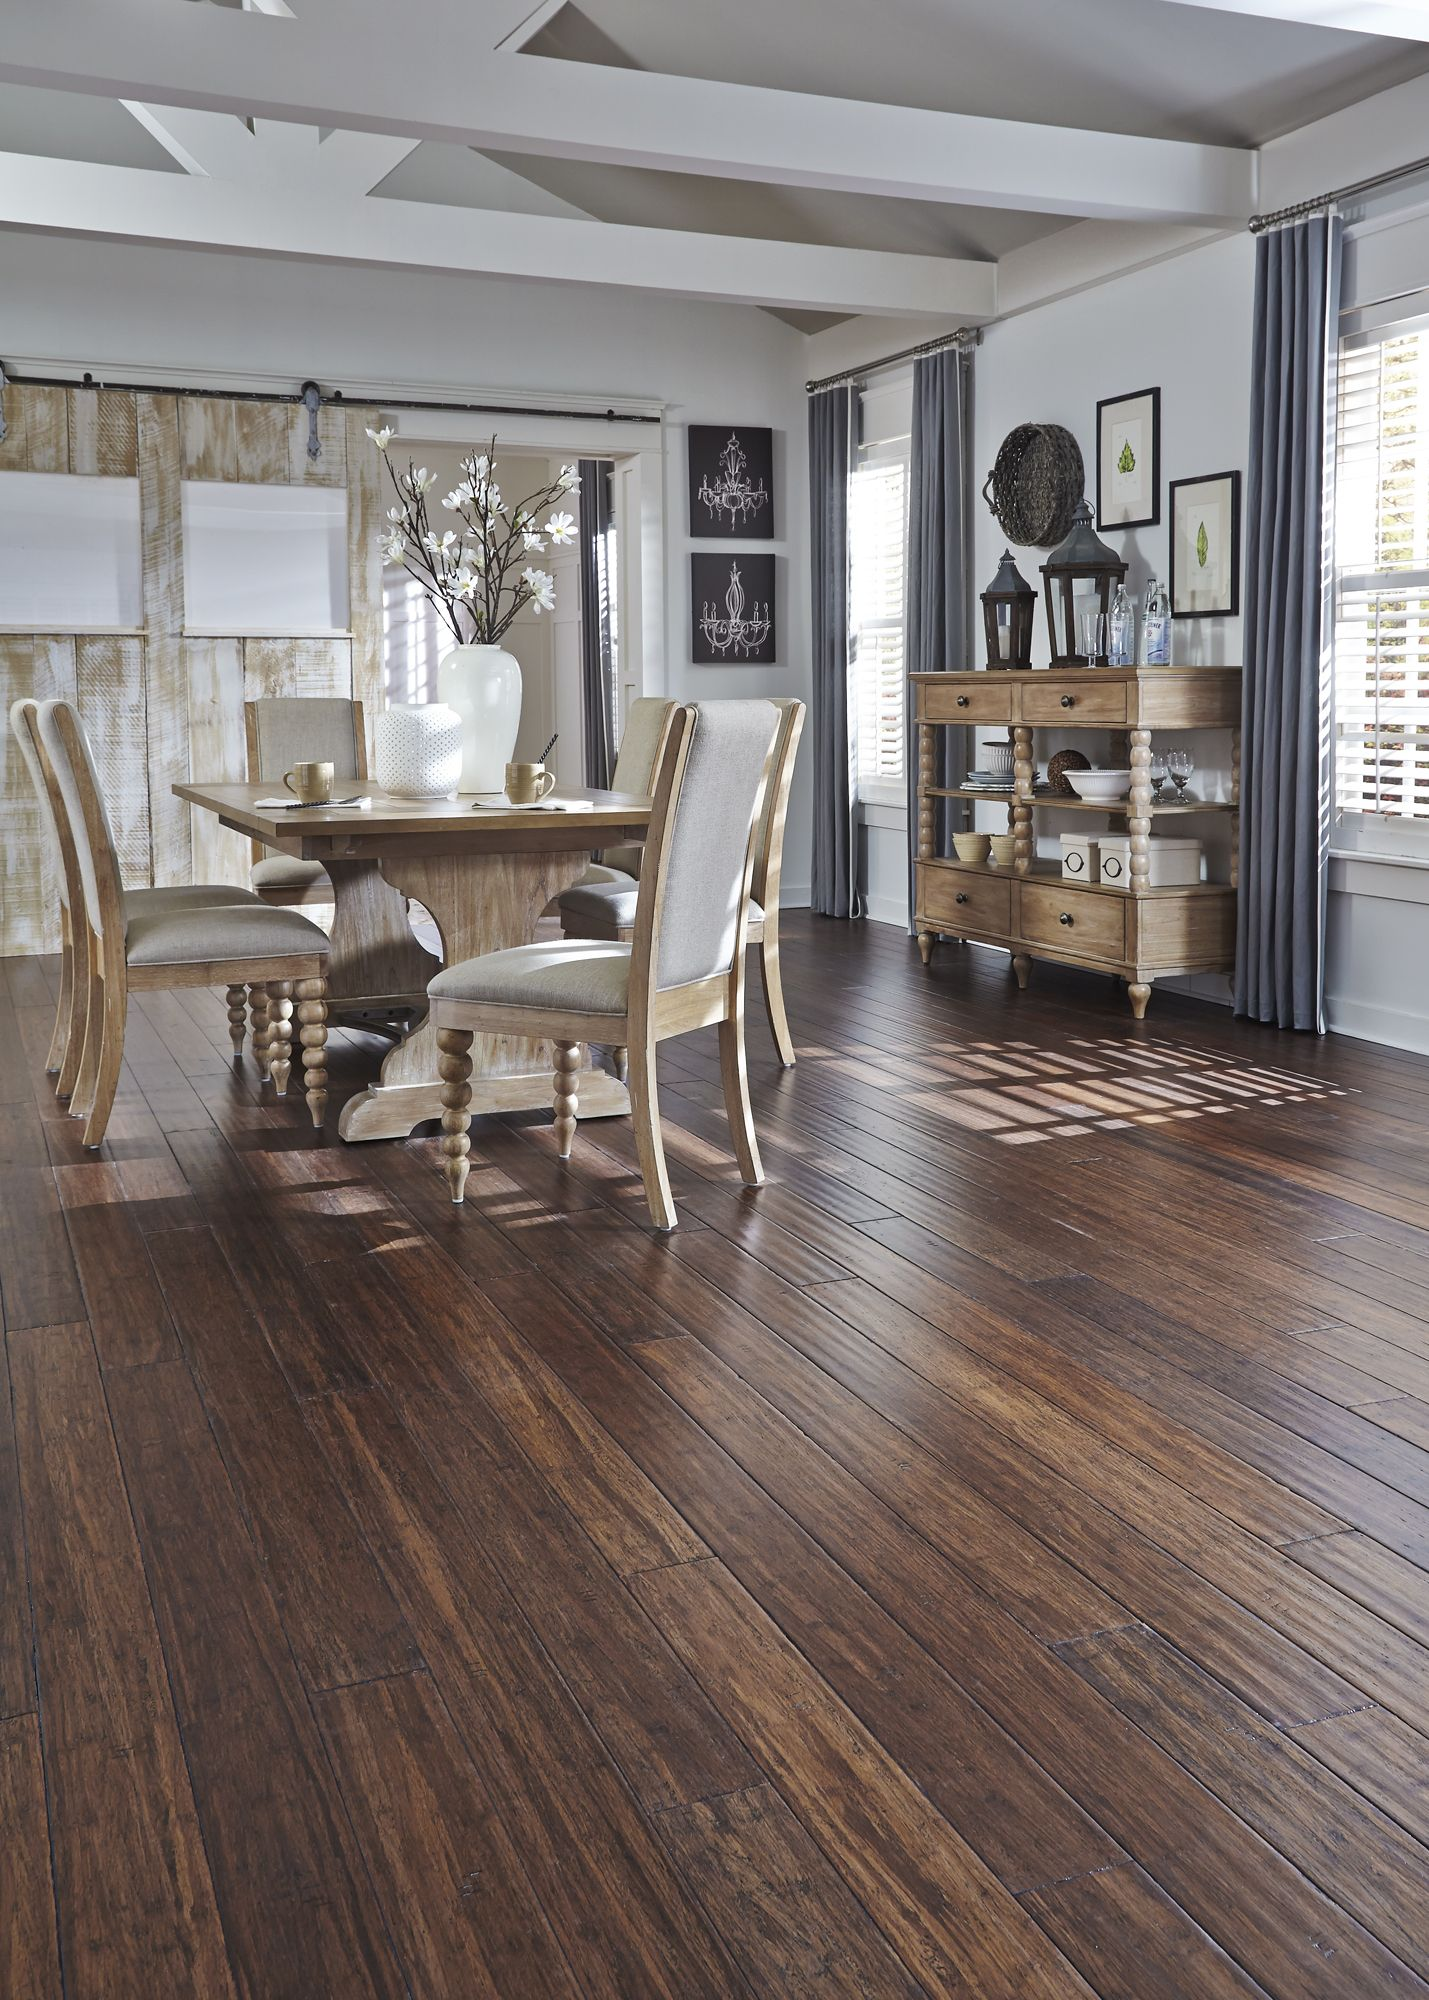 Bamboo Flooring For Kitchen Pros And Cons Distressed Bamboo Is A Top Pick This Fall Would You Use This